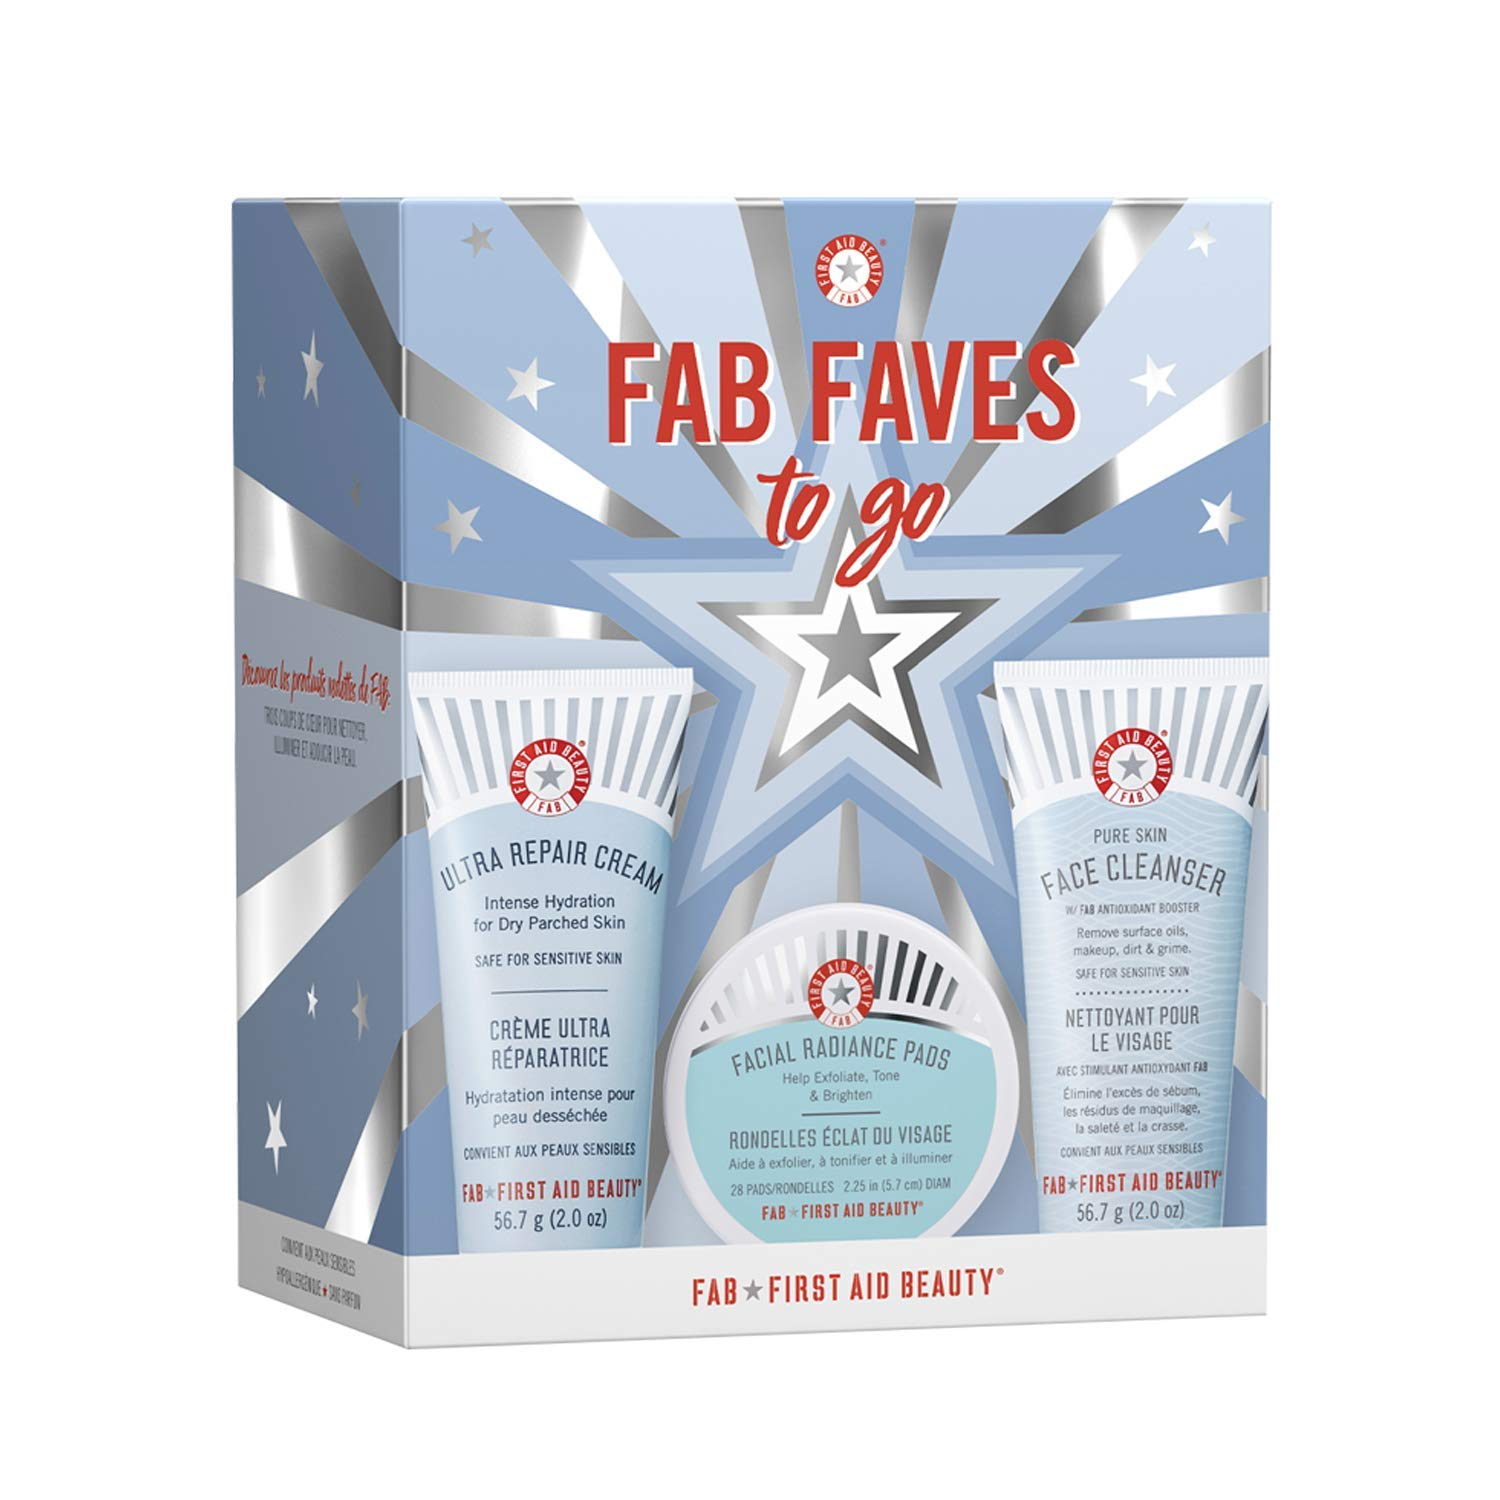 First Aid Beauty FAB Faves to Go Kit: Travel Size Face Cleanser, Exfoliator Pads and Moisturizer